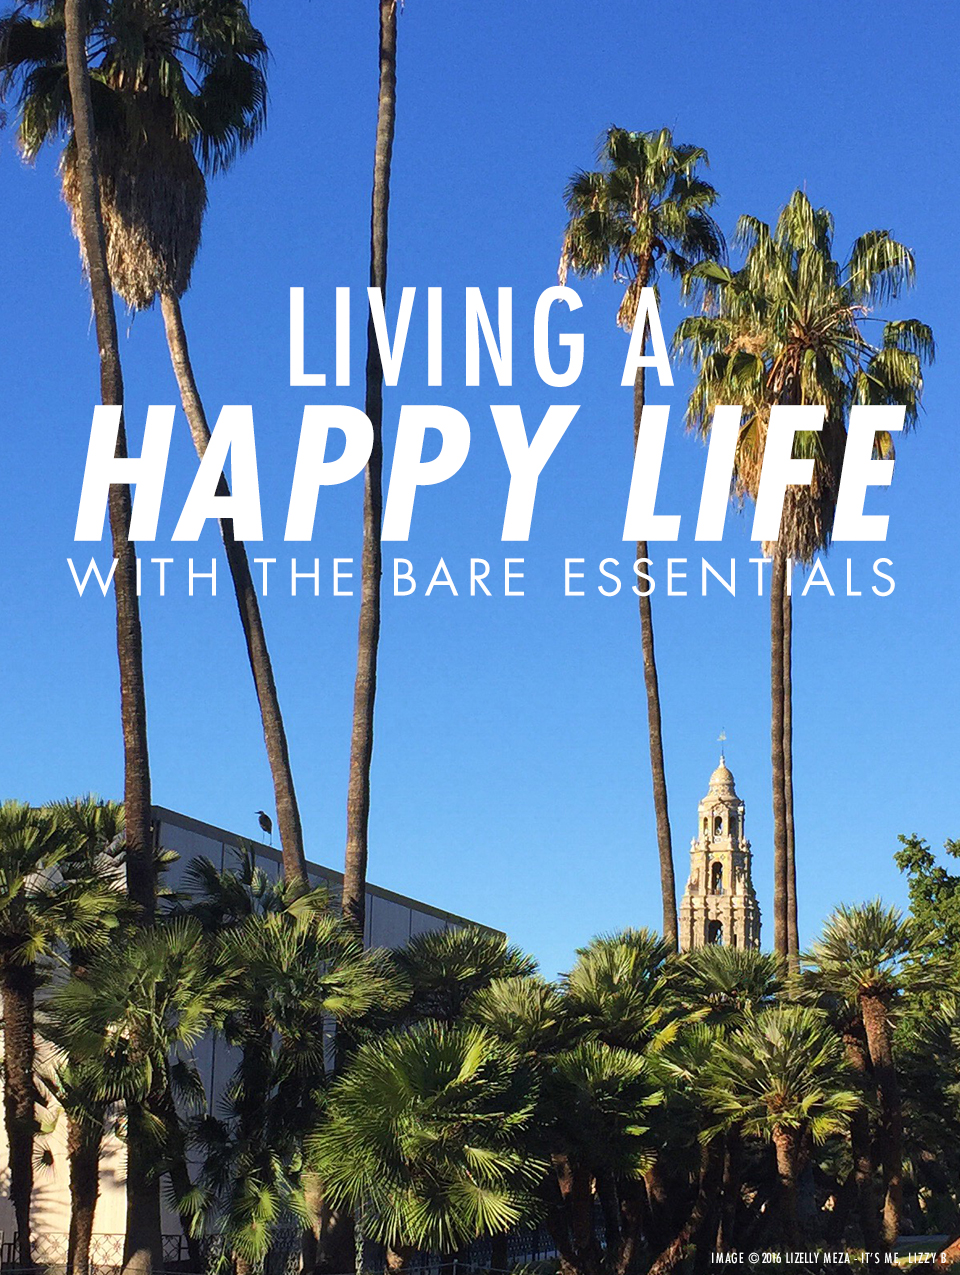 Living a Happy Life with the Bare Essentials // It's Me, Lizzy B - Musings on Life, Business, & The Pursuit of Everyday Joy // Personal blog of Lizelly Meza from Lizzy B Loves